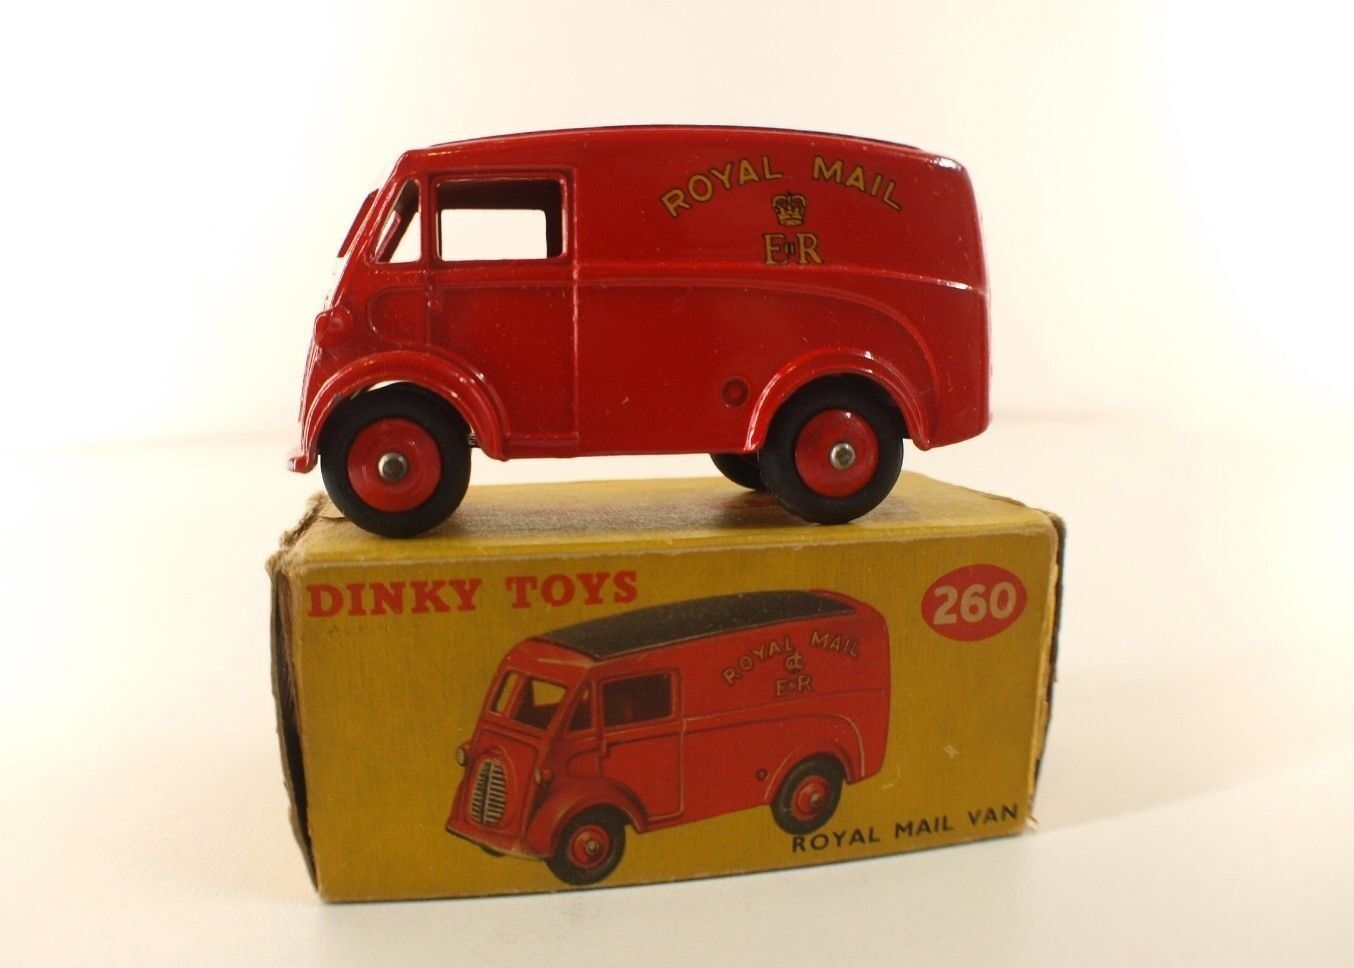 Dinky toys gb no. 260 morris royal mail van never  played in box  bonne réputation